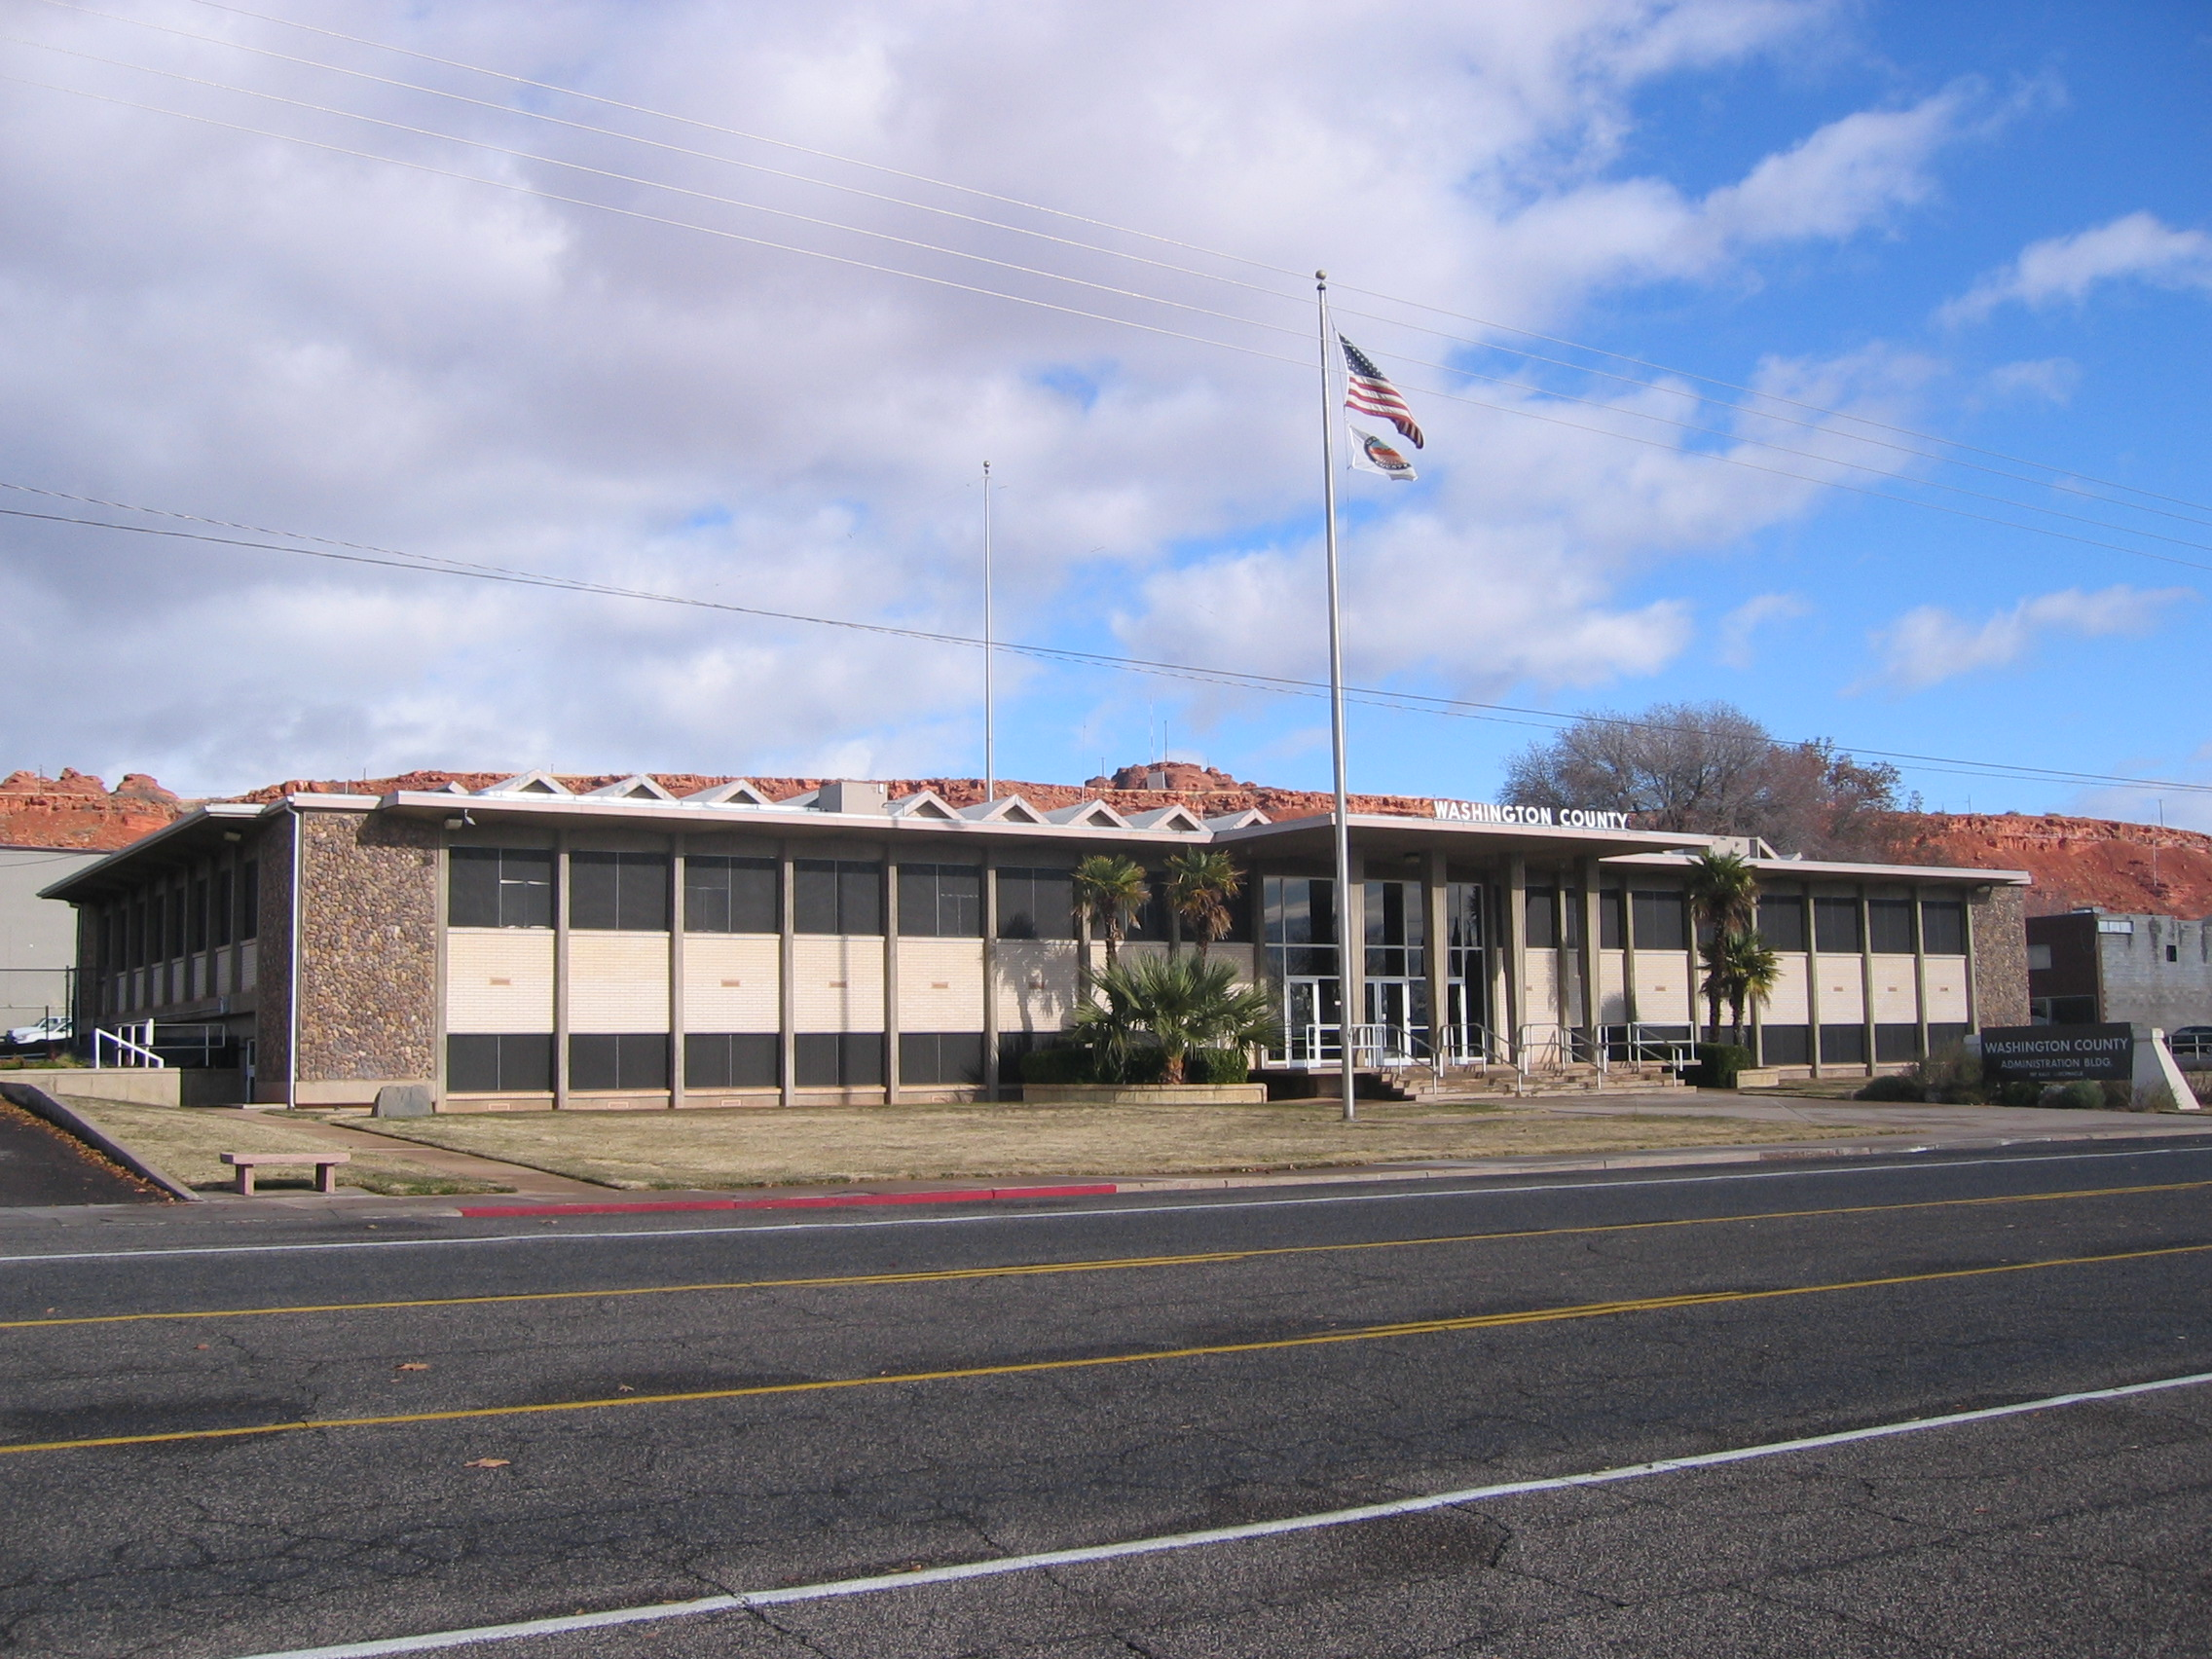 Washington County Administration Building